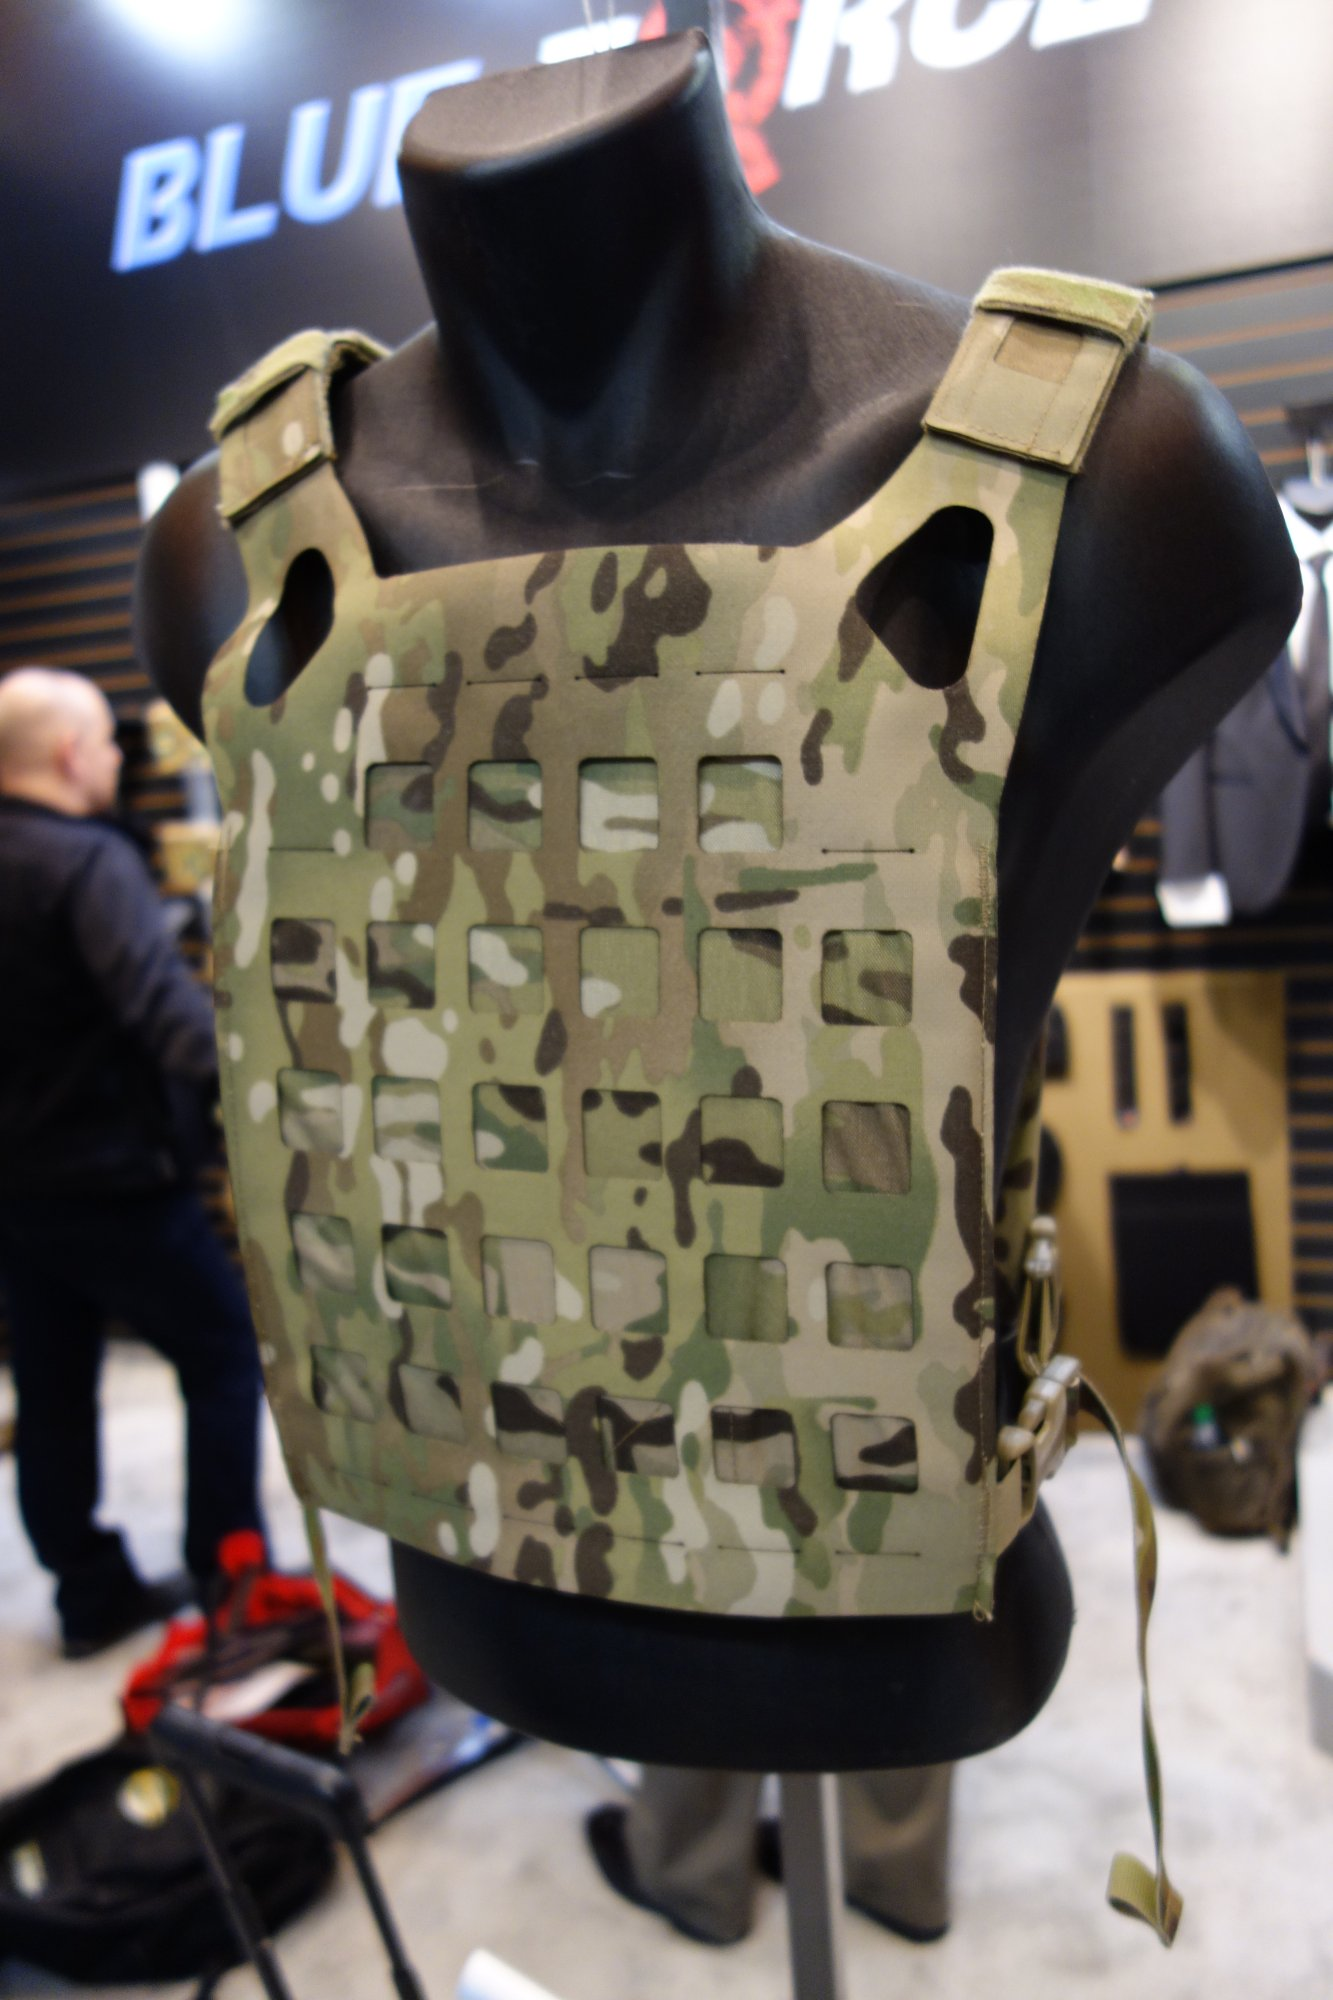 Blue Force Gear BFG PLATEminus Ultra Lightweight Low Profile Low Visibility Tactical Armor Plate Carrier with MOLLEminus and ULTRAcomp Crye MultiCam Camo Pattern at SHOT Show 2013 David Crane DefenseReview.com DR 3 Blue Force Gear (BFG) PLATEminus Ultra Lightweight Low Profile/Low Visibility Tactical Armor Plate Carrier and BELTminus and SPLITminus Battle Belt/Chest Rig/Harness Systems with MOLLEminus Cutaway MOLLE System and ULTRAcomp Laminate: Tactical Body Armor Goes Super Minimalist